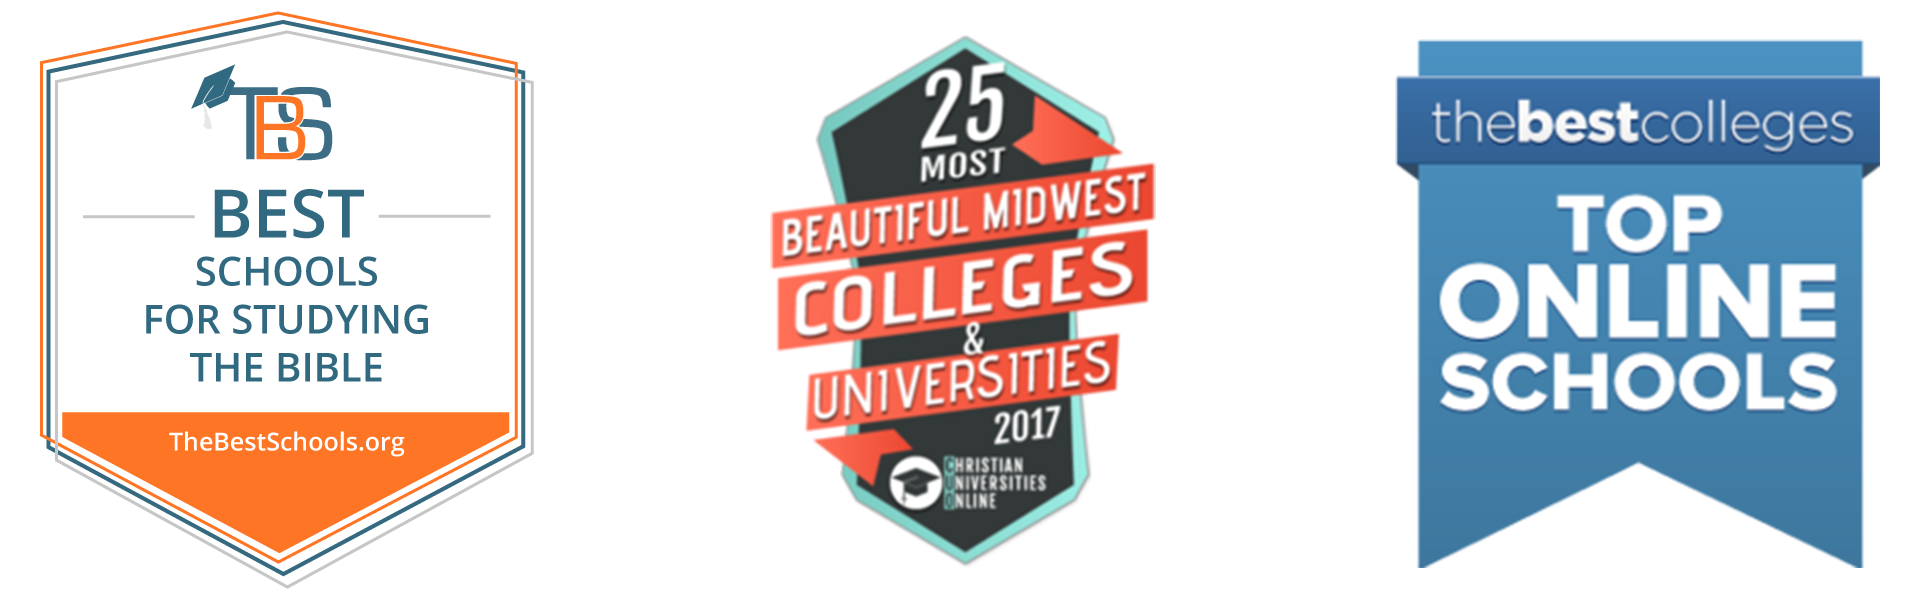 The16th Best School for Studying the Bible, First of 25 Most Beautiful Colleges and Universities 2017 Award, and Top Online Schools Award badges.